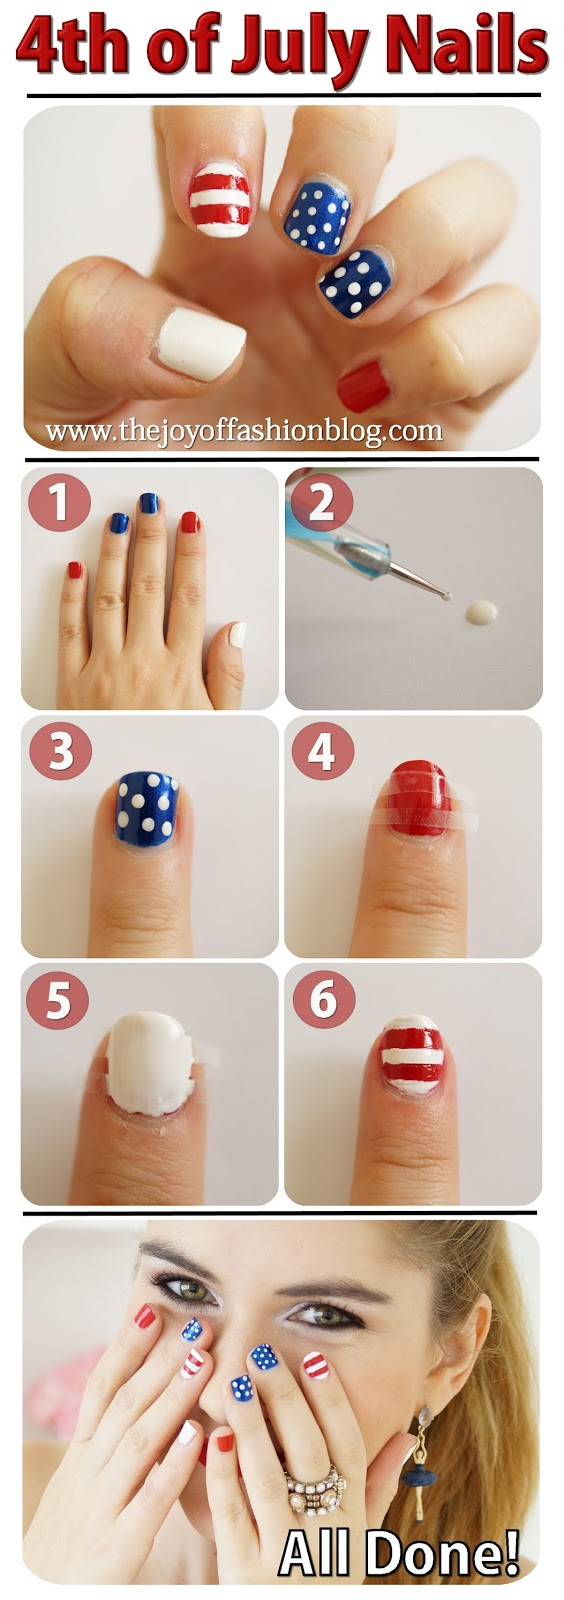 4th of July Nails Tutorial